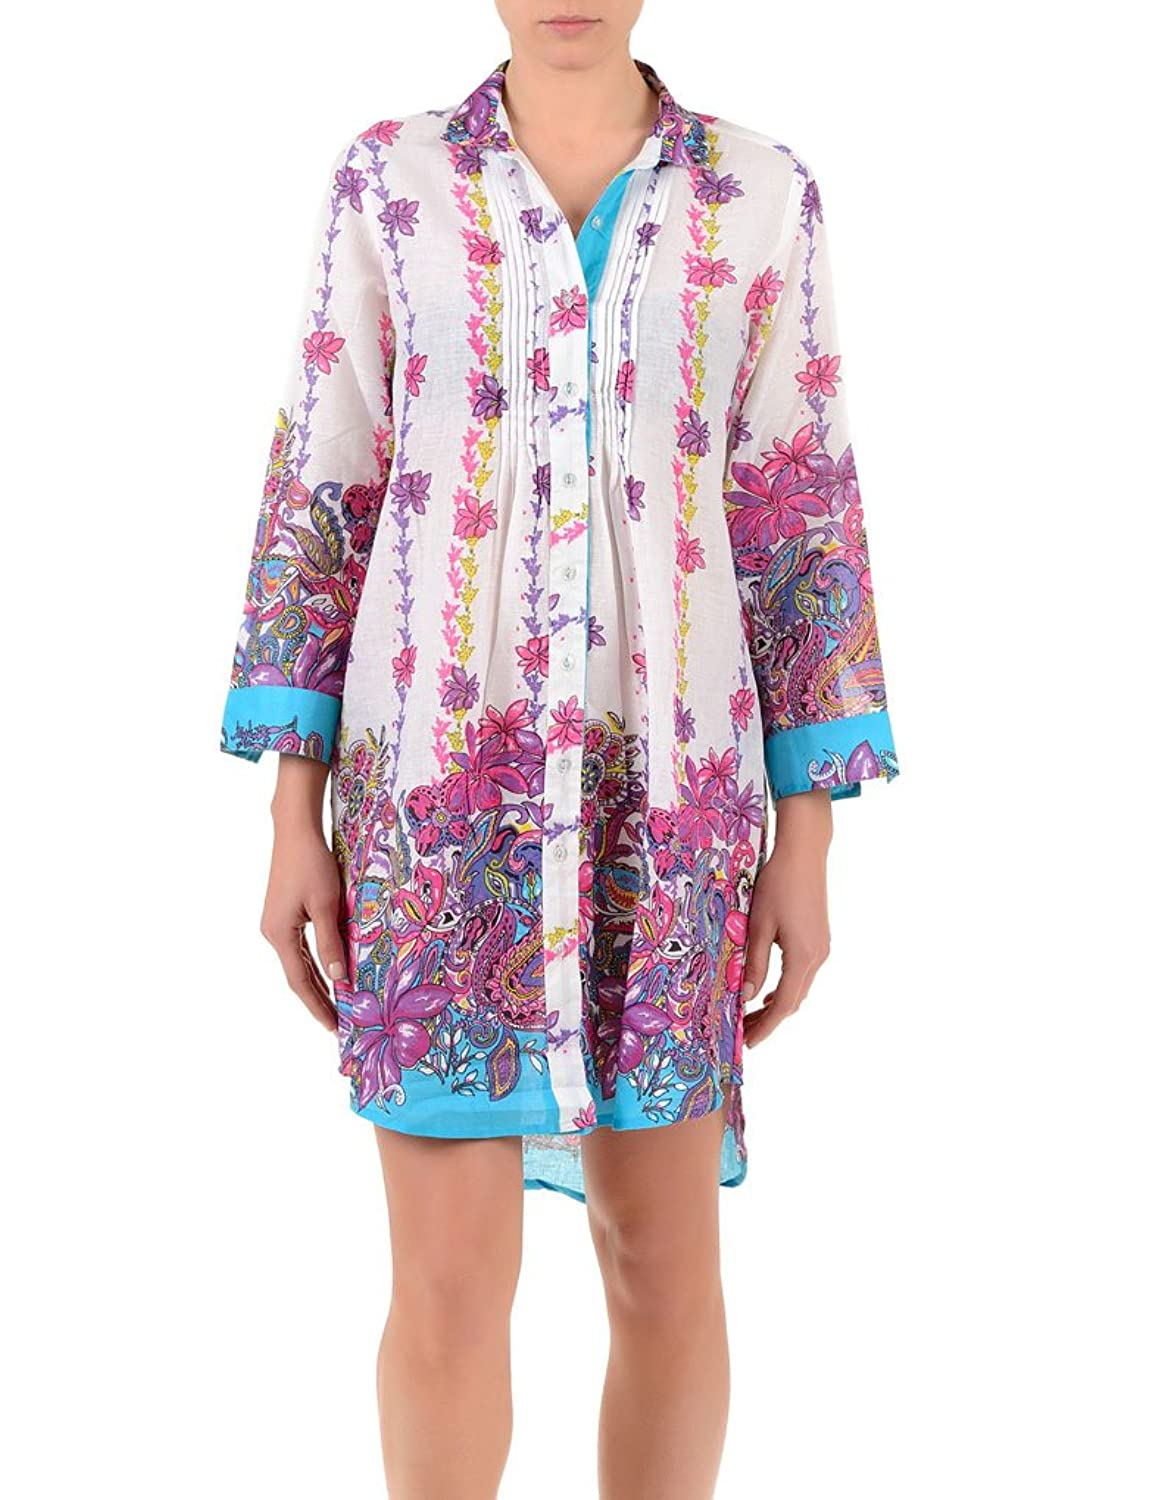 Iconique IC7-053 Women's White Pink Blue Floral Camisole Beach Dress